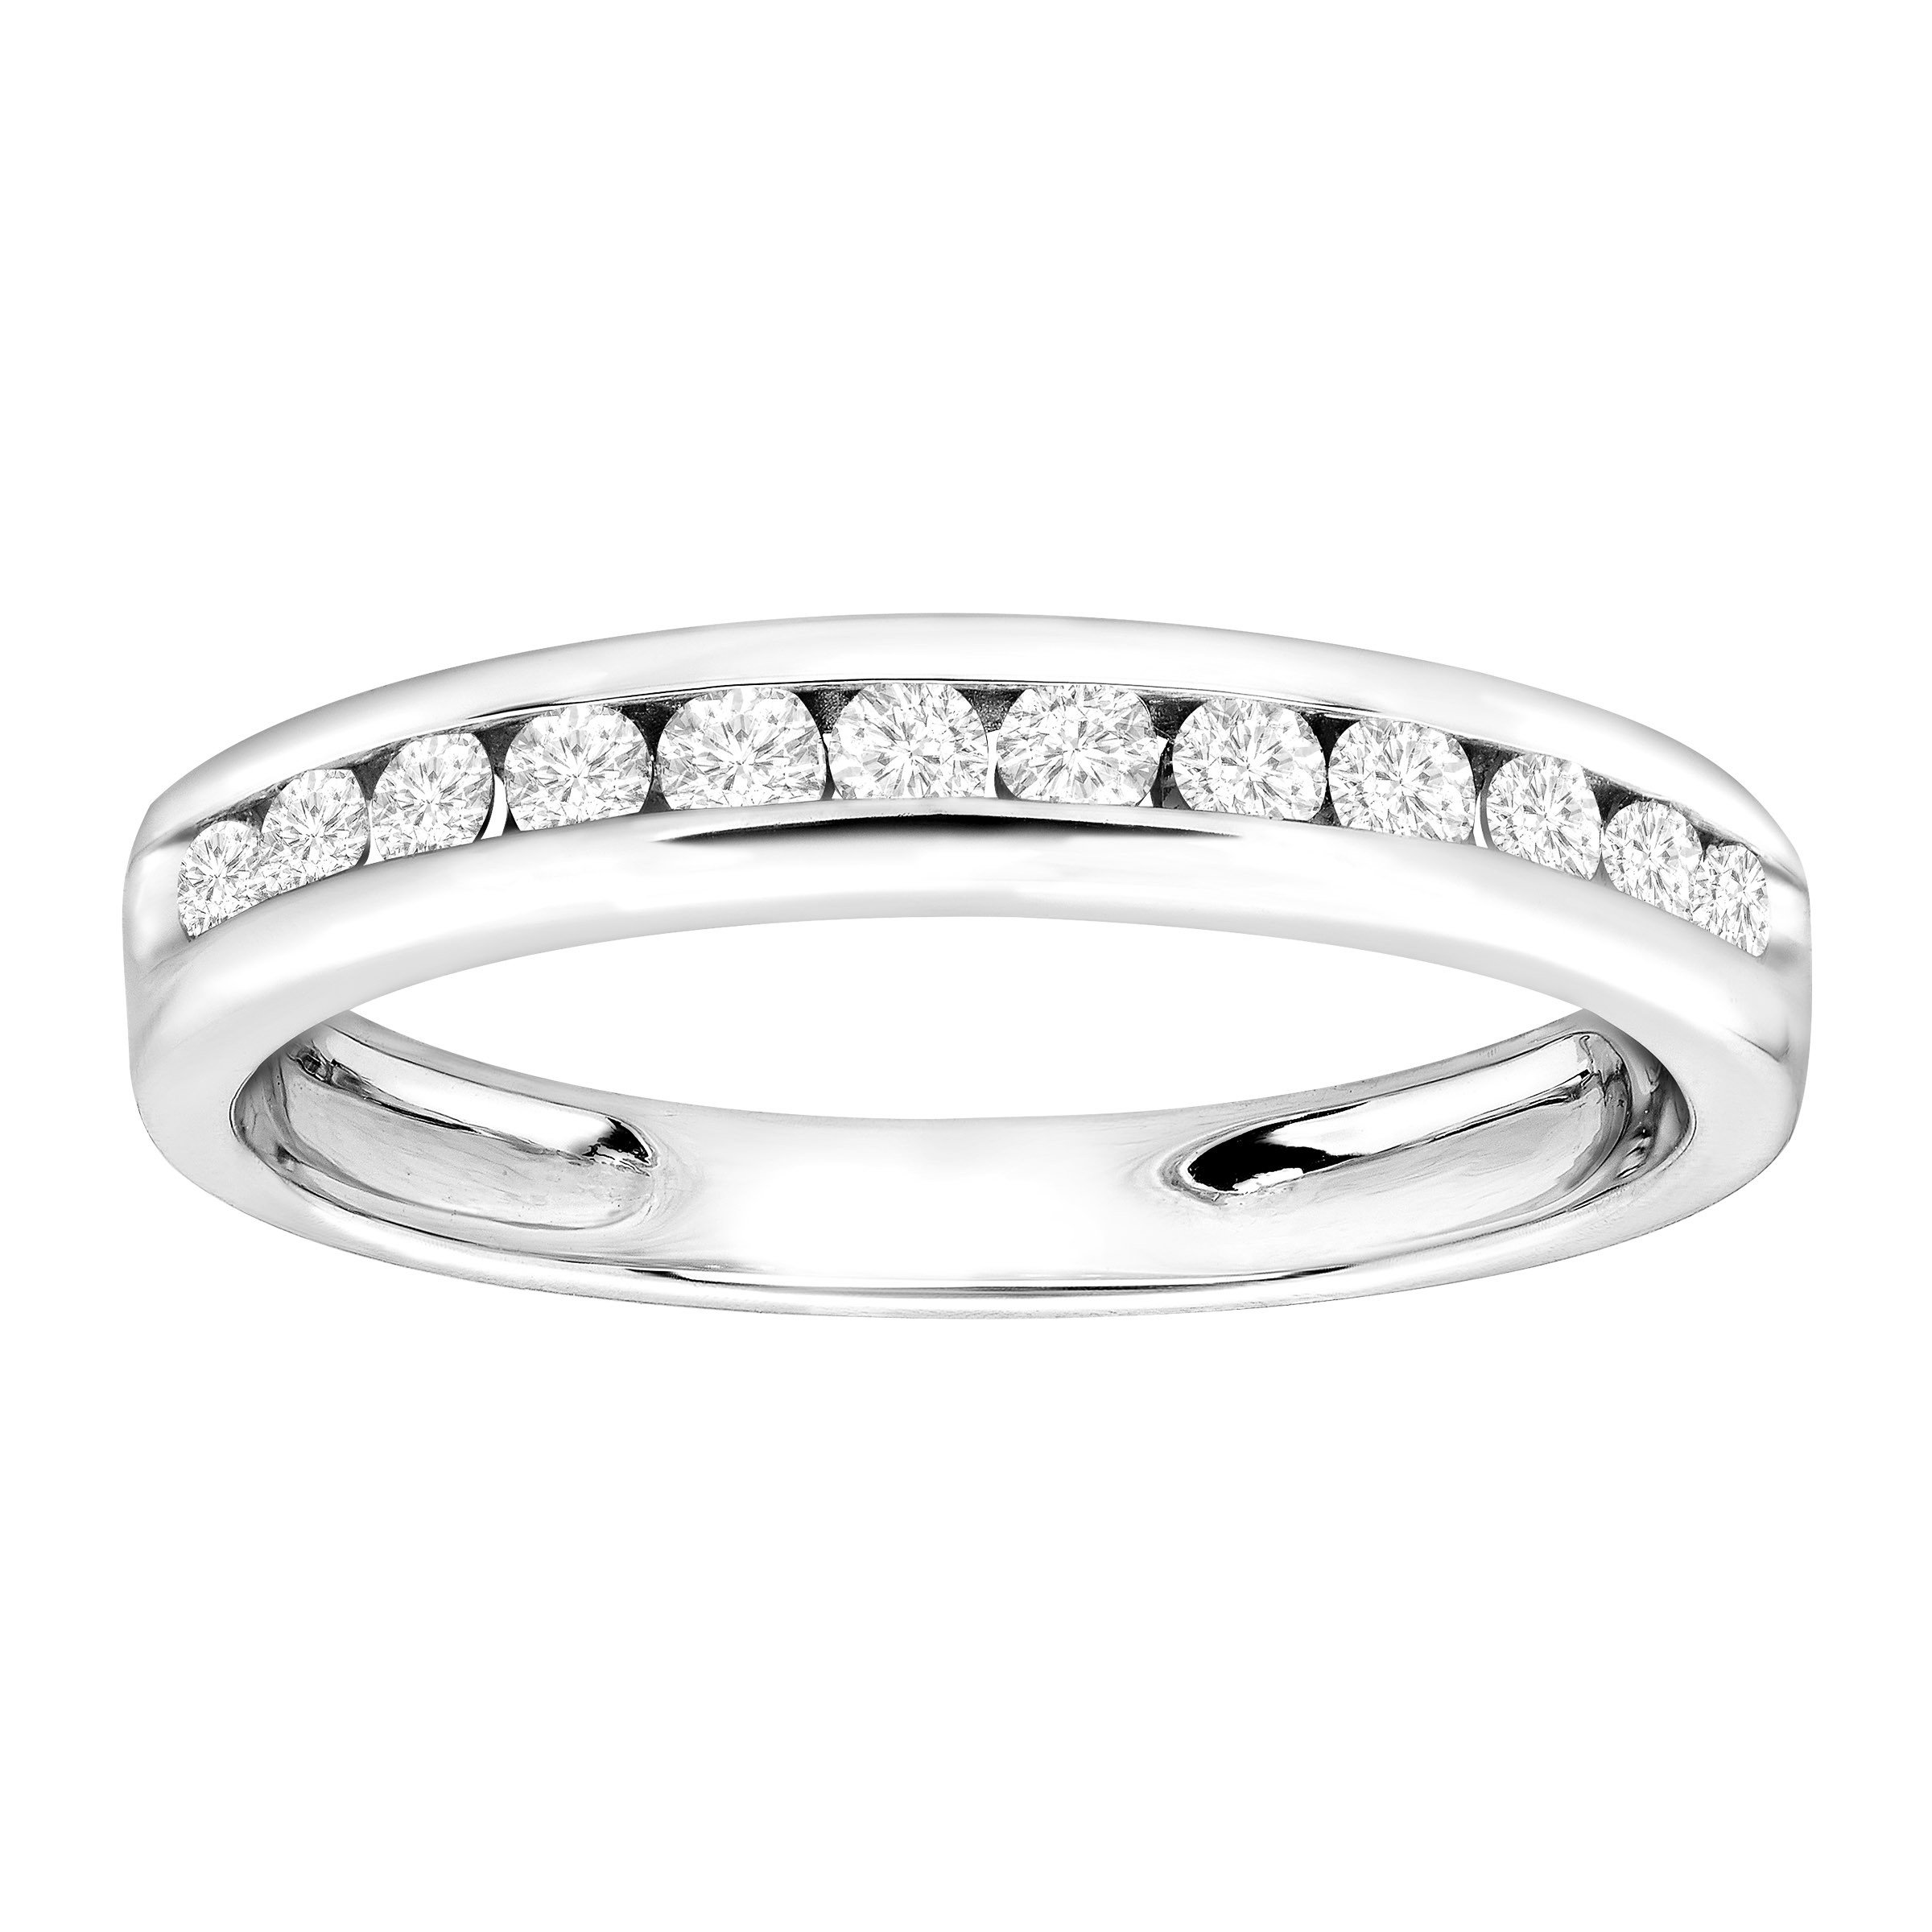 3/8 ct Diamond Anniversary Band Ring in Sterling Silver Size 7